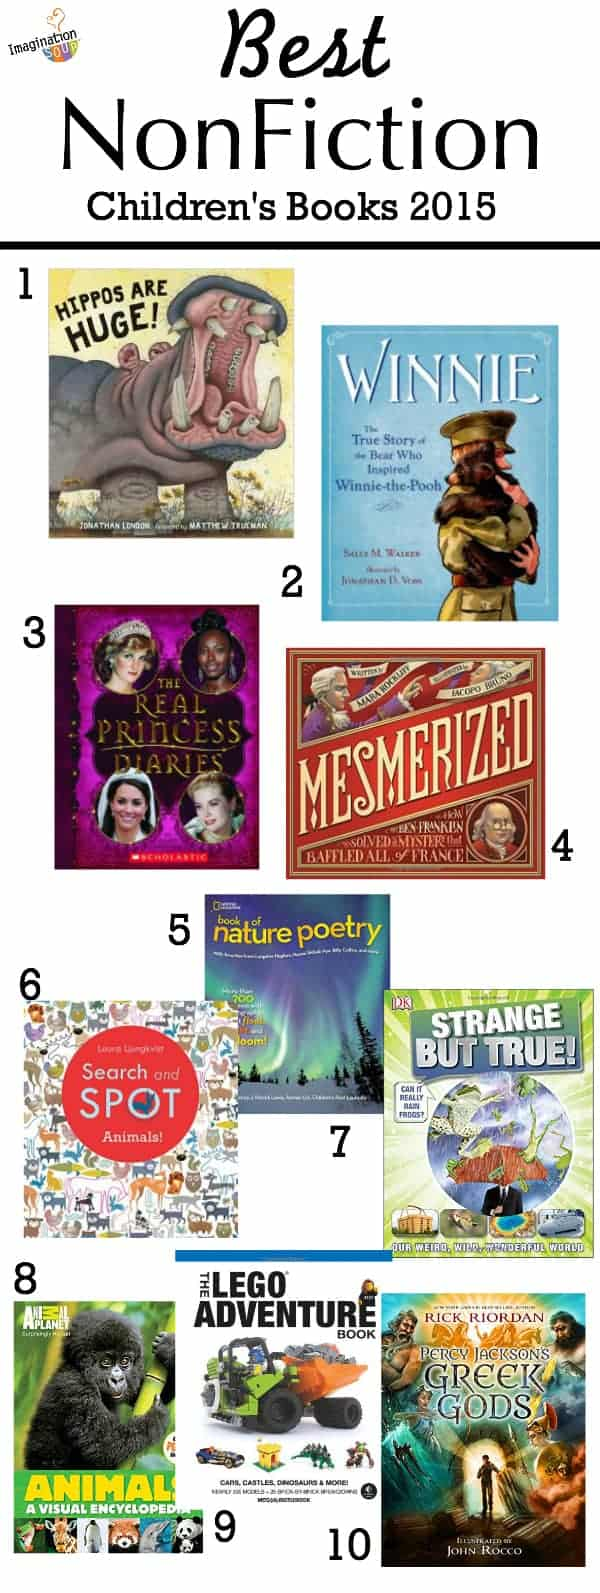 best children's nonfiction books 2015